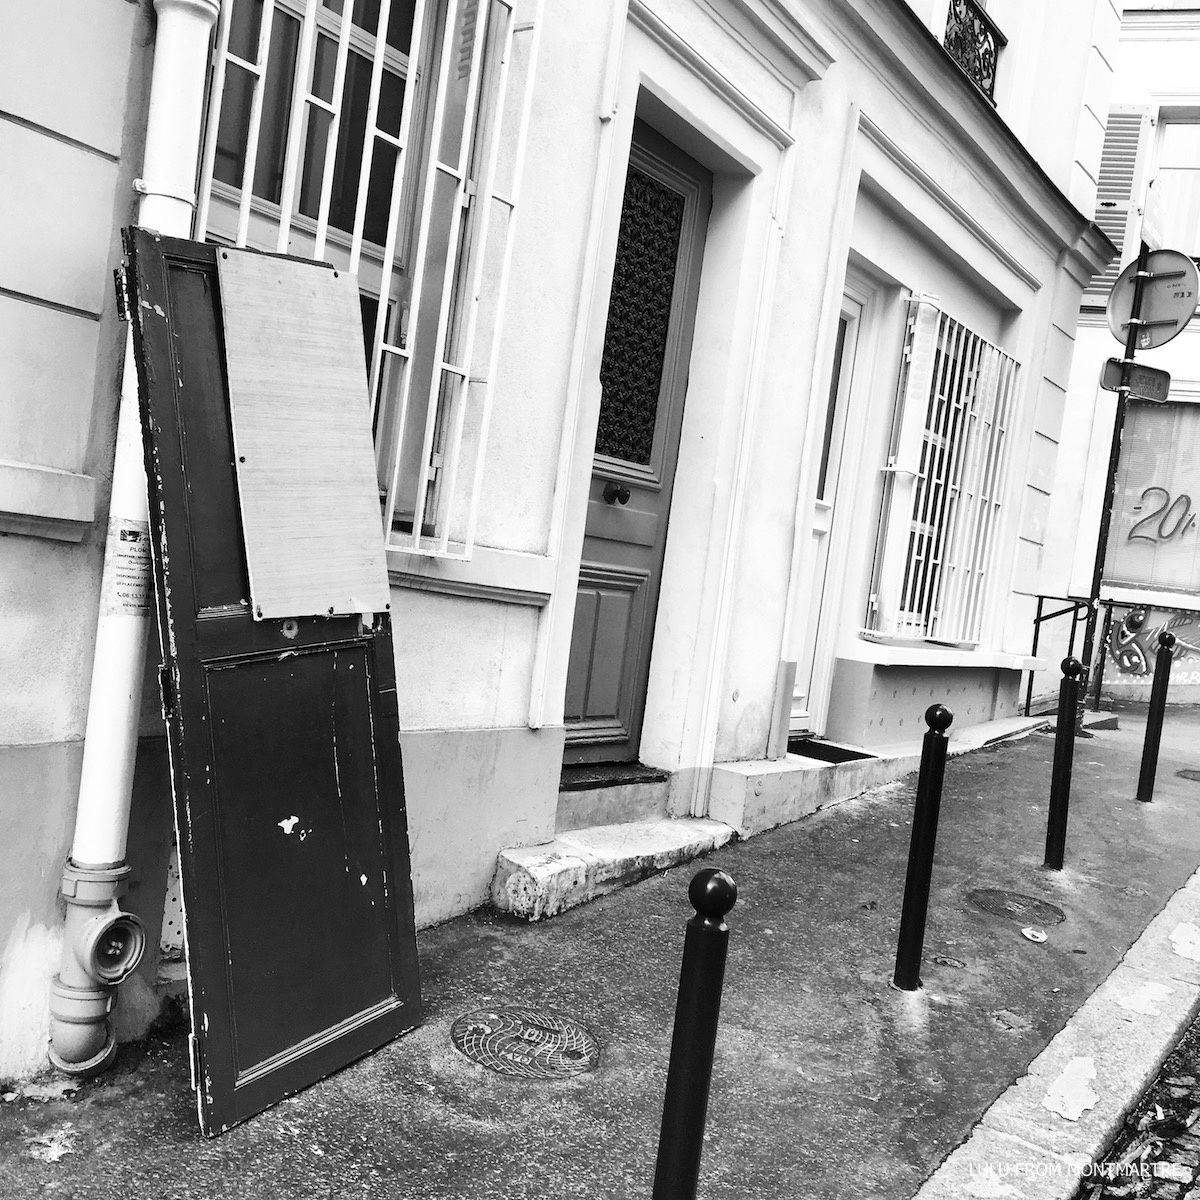 14. Lost in Montmartre, 75018